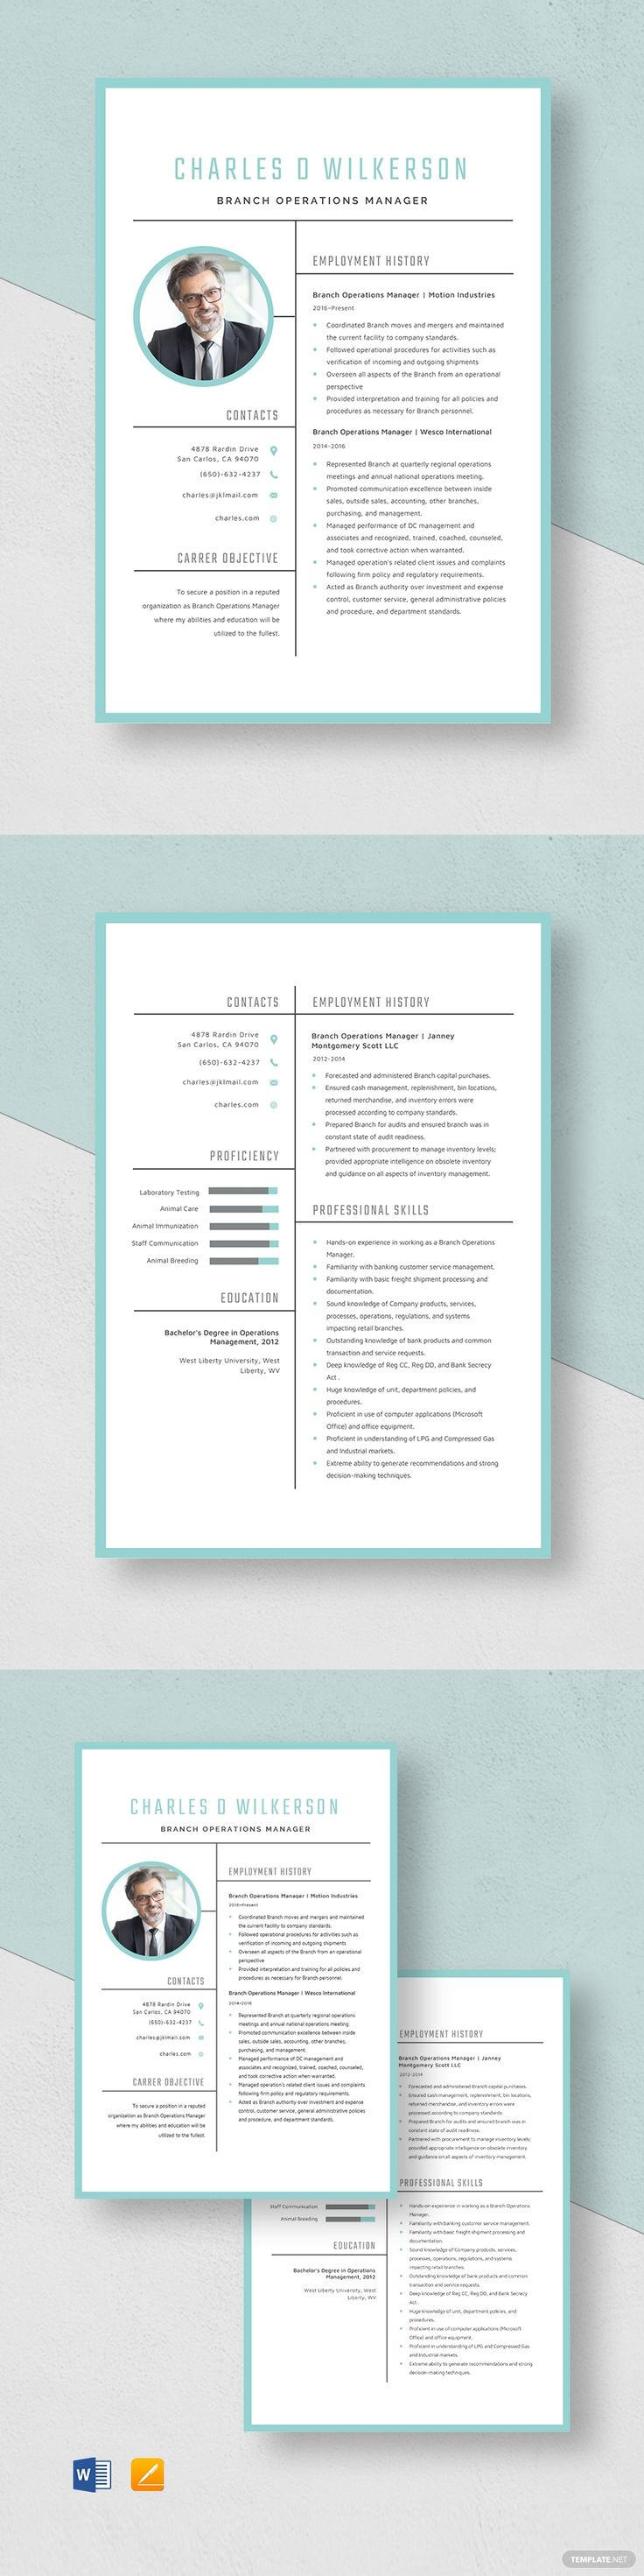 Branch operations manager resume template ad